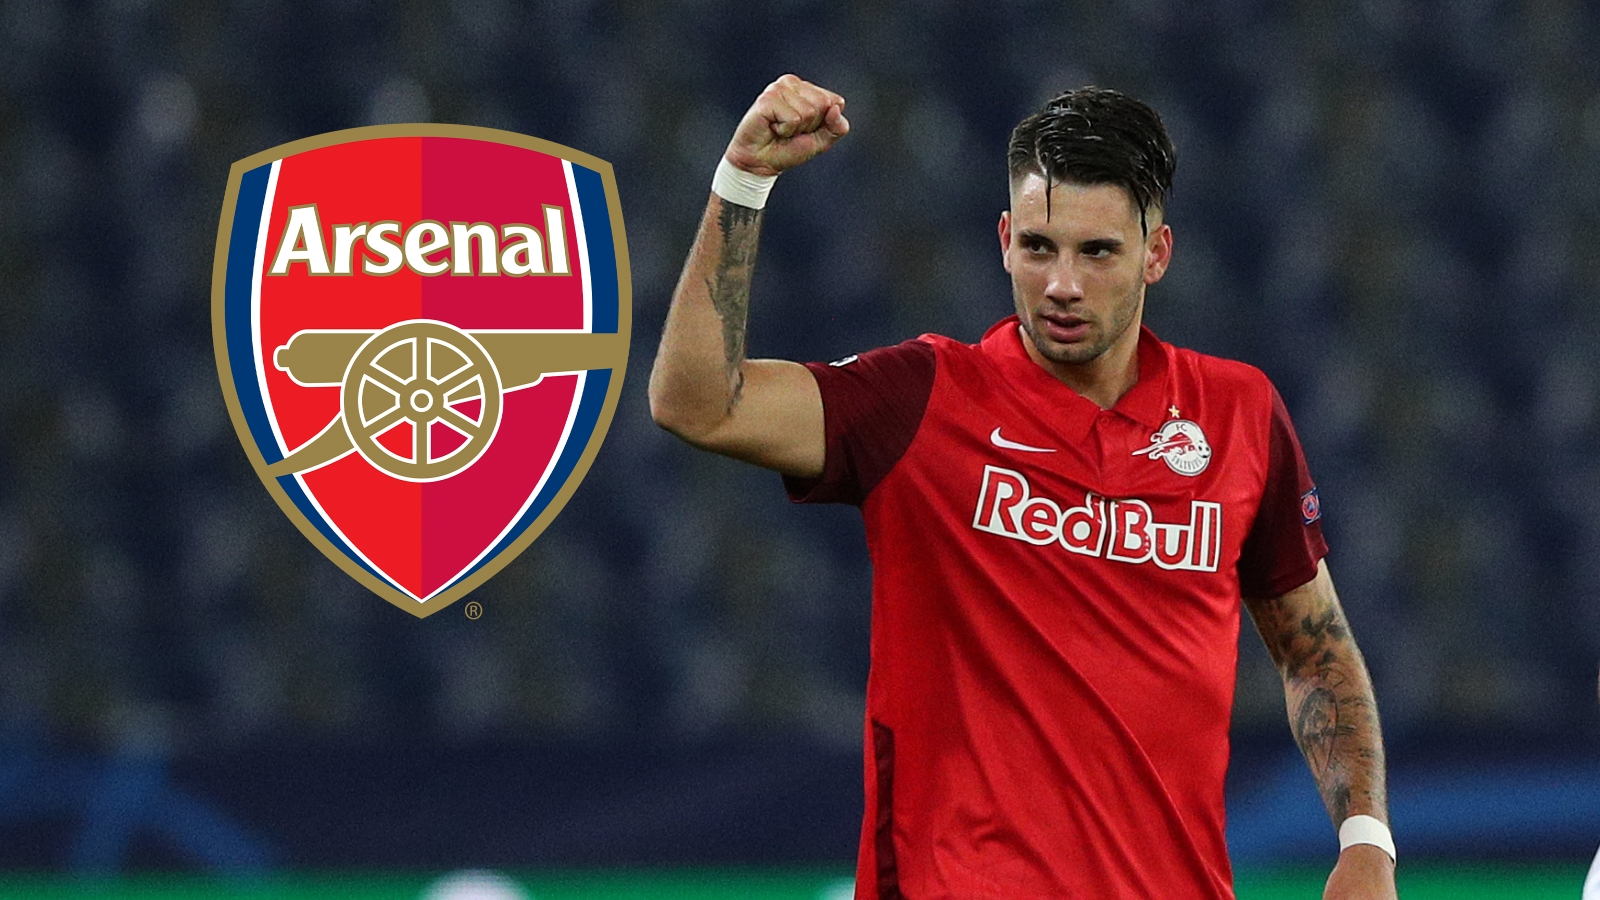 Transfer news and rumours LIVE: Arsenal working on deal for Red Bull Salzburg star Szoboszlai